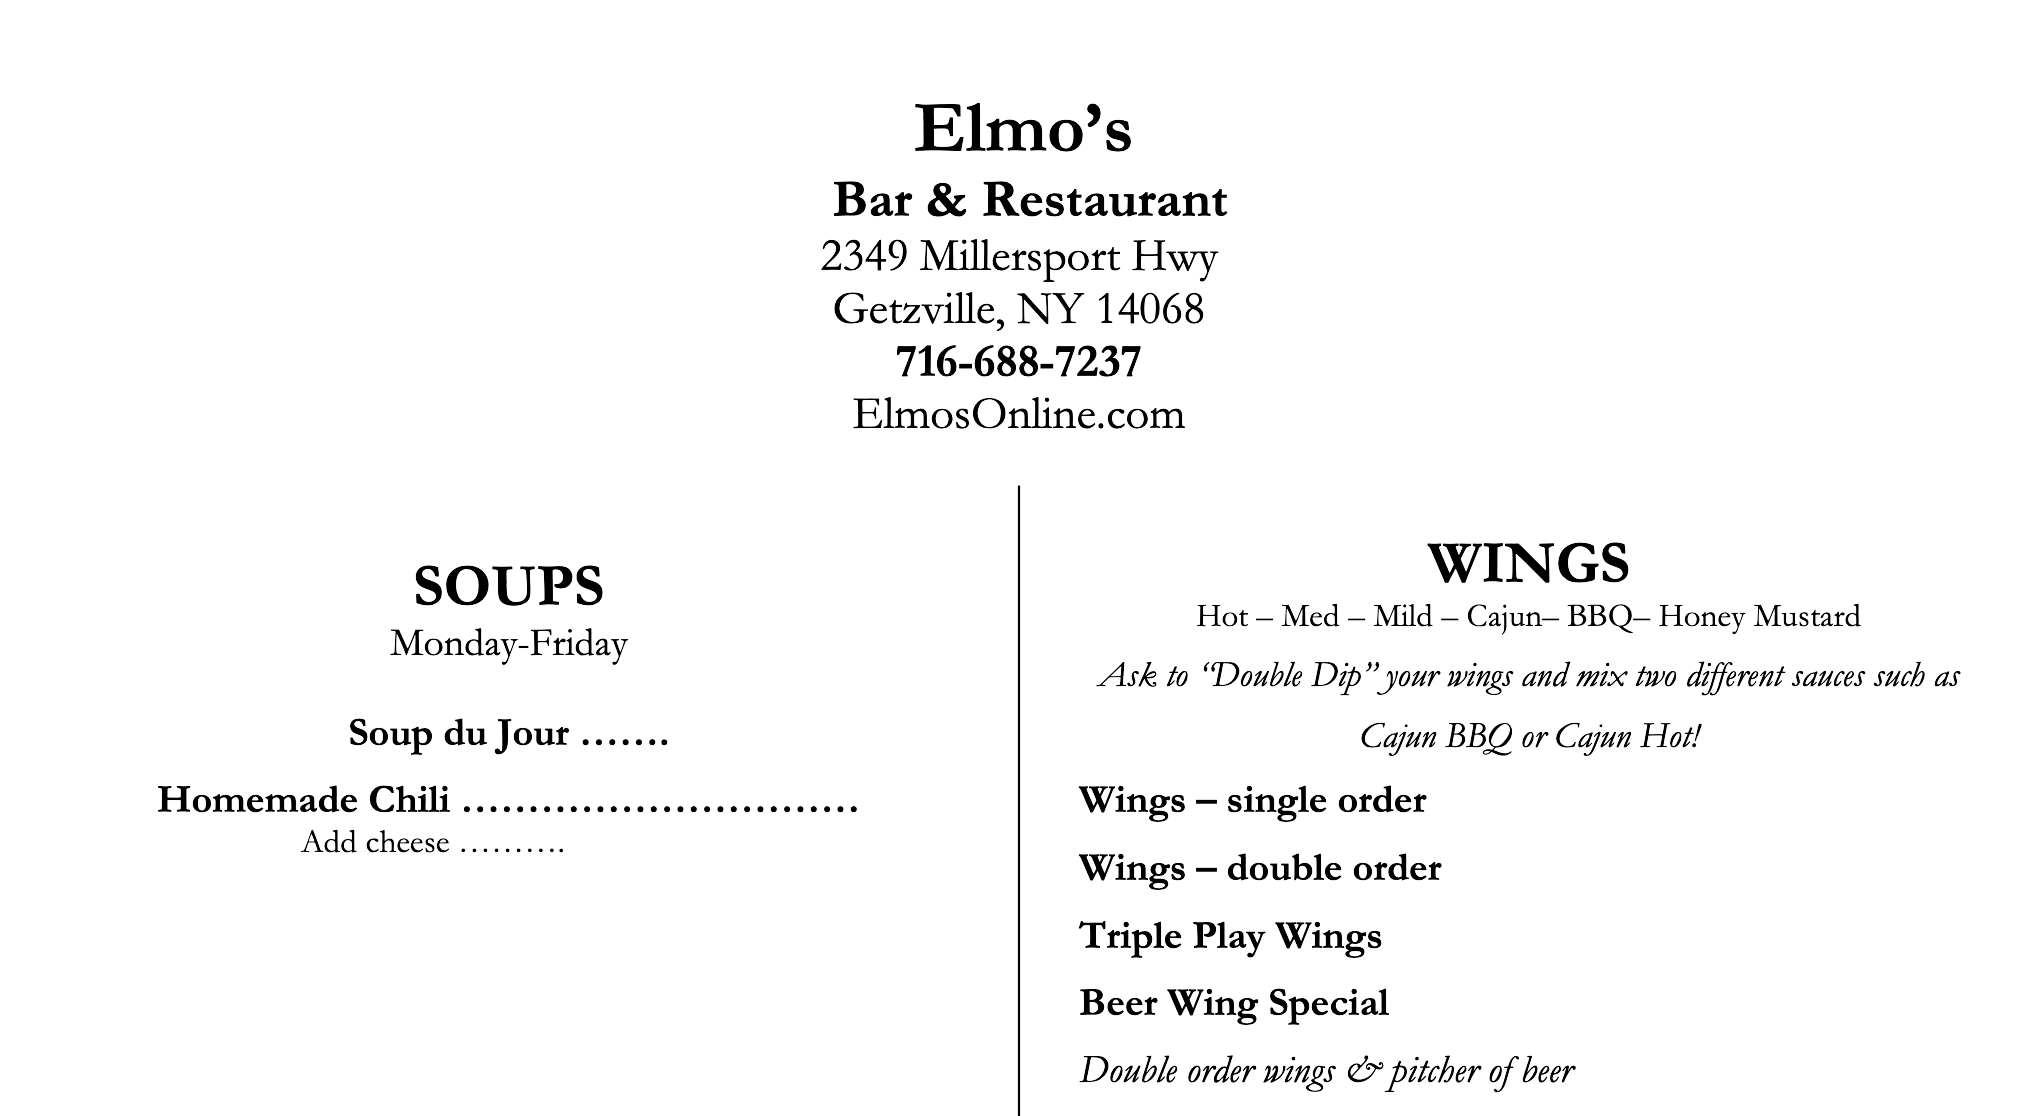 Elmo's Bar and Restaurant Menu Edit.png